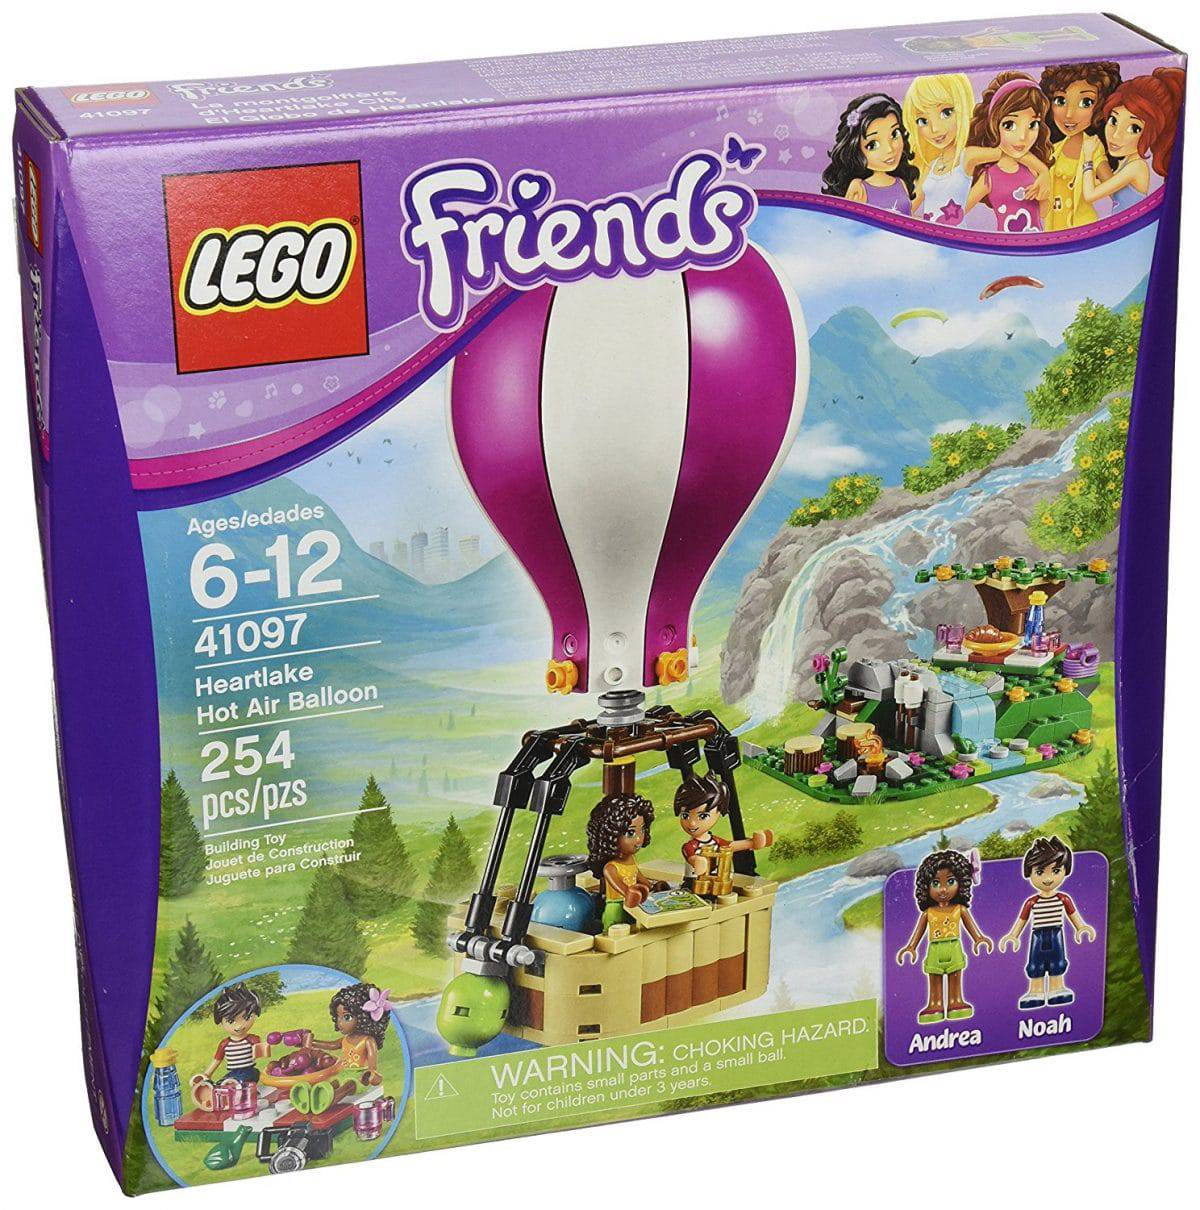 Best Toys And Gift Ideas For 6 Year Old Girls To Buy 2019 Littleonemag